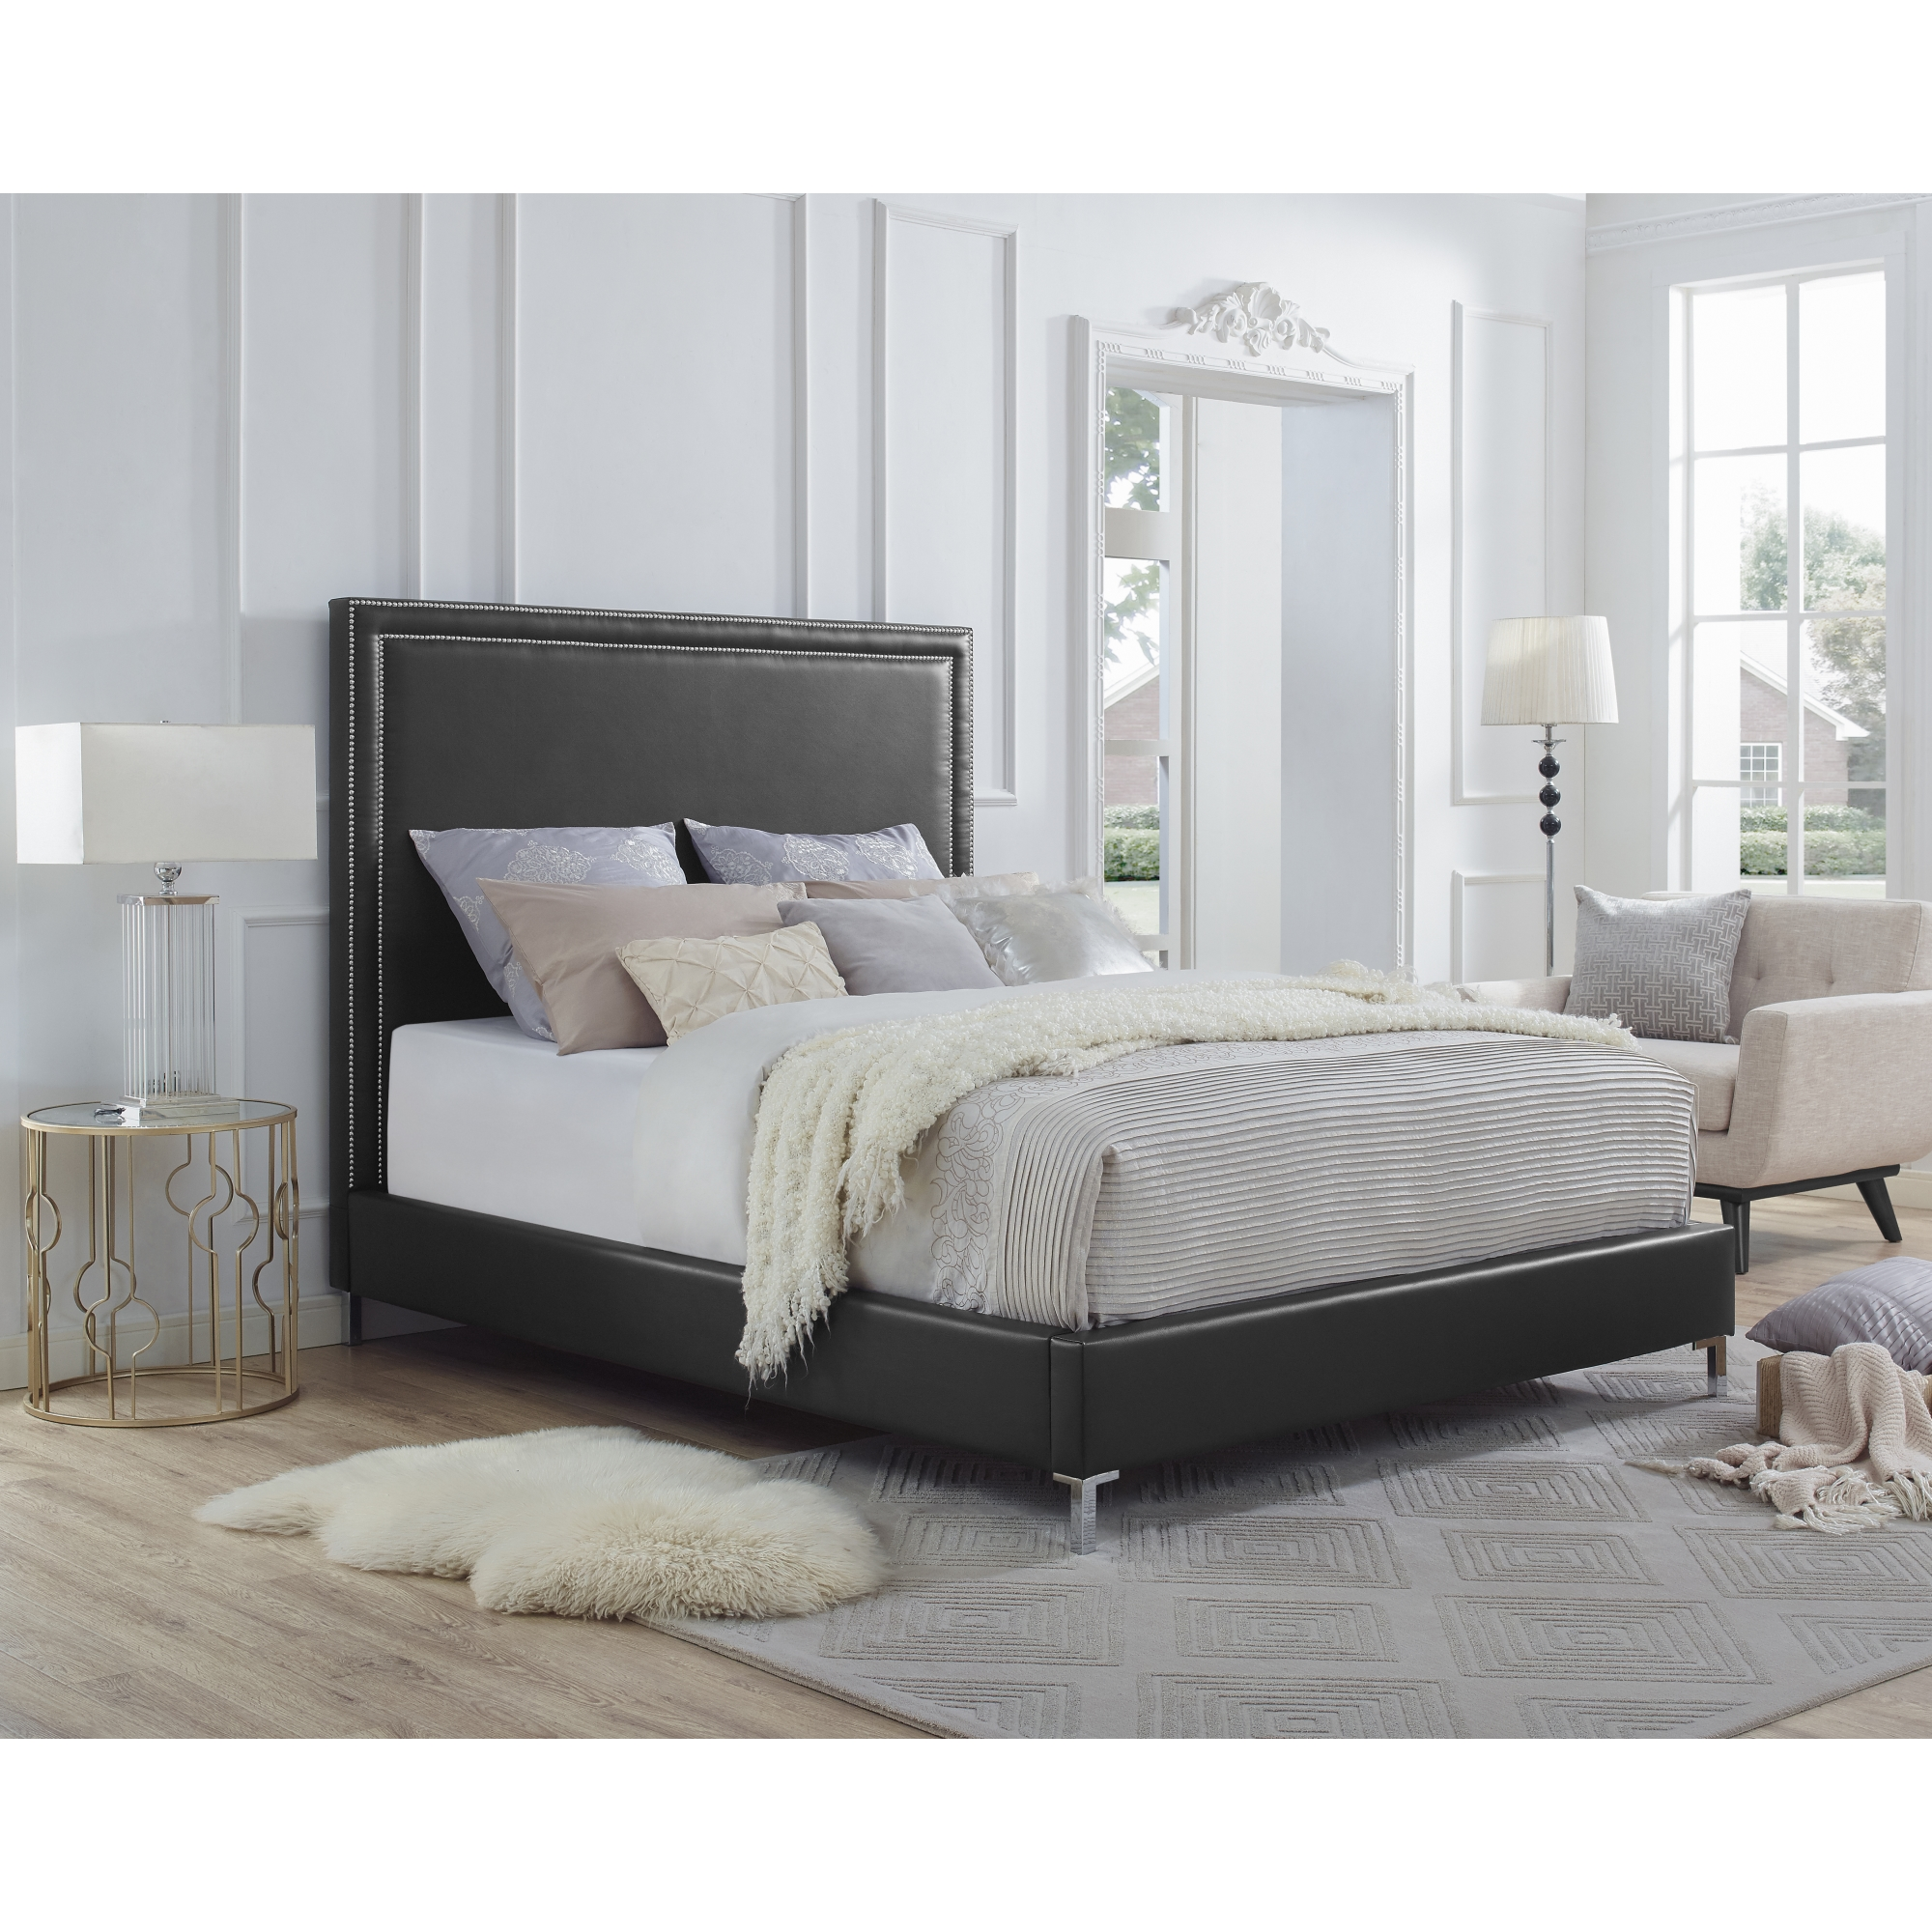 Inspired Home Black PU Leather Bed Nailhead Trim